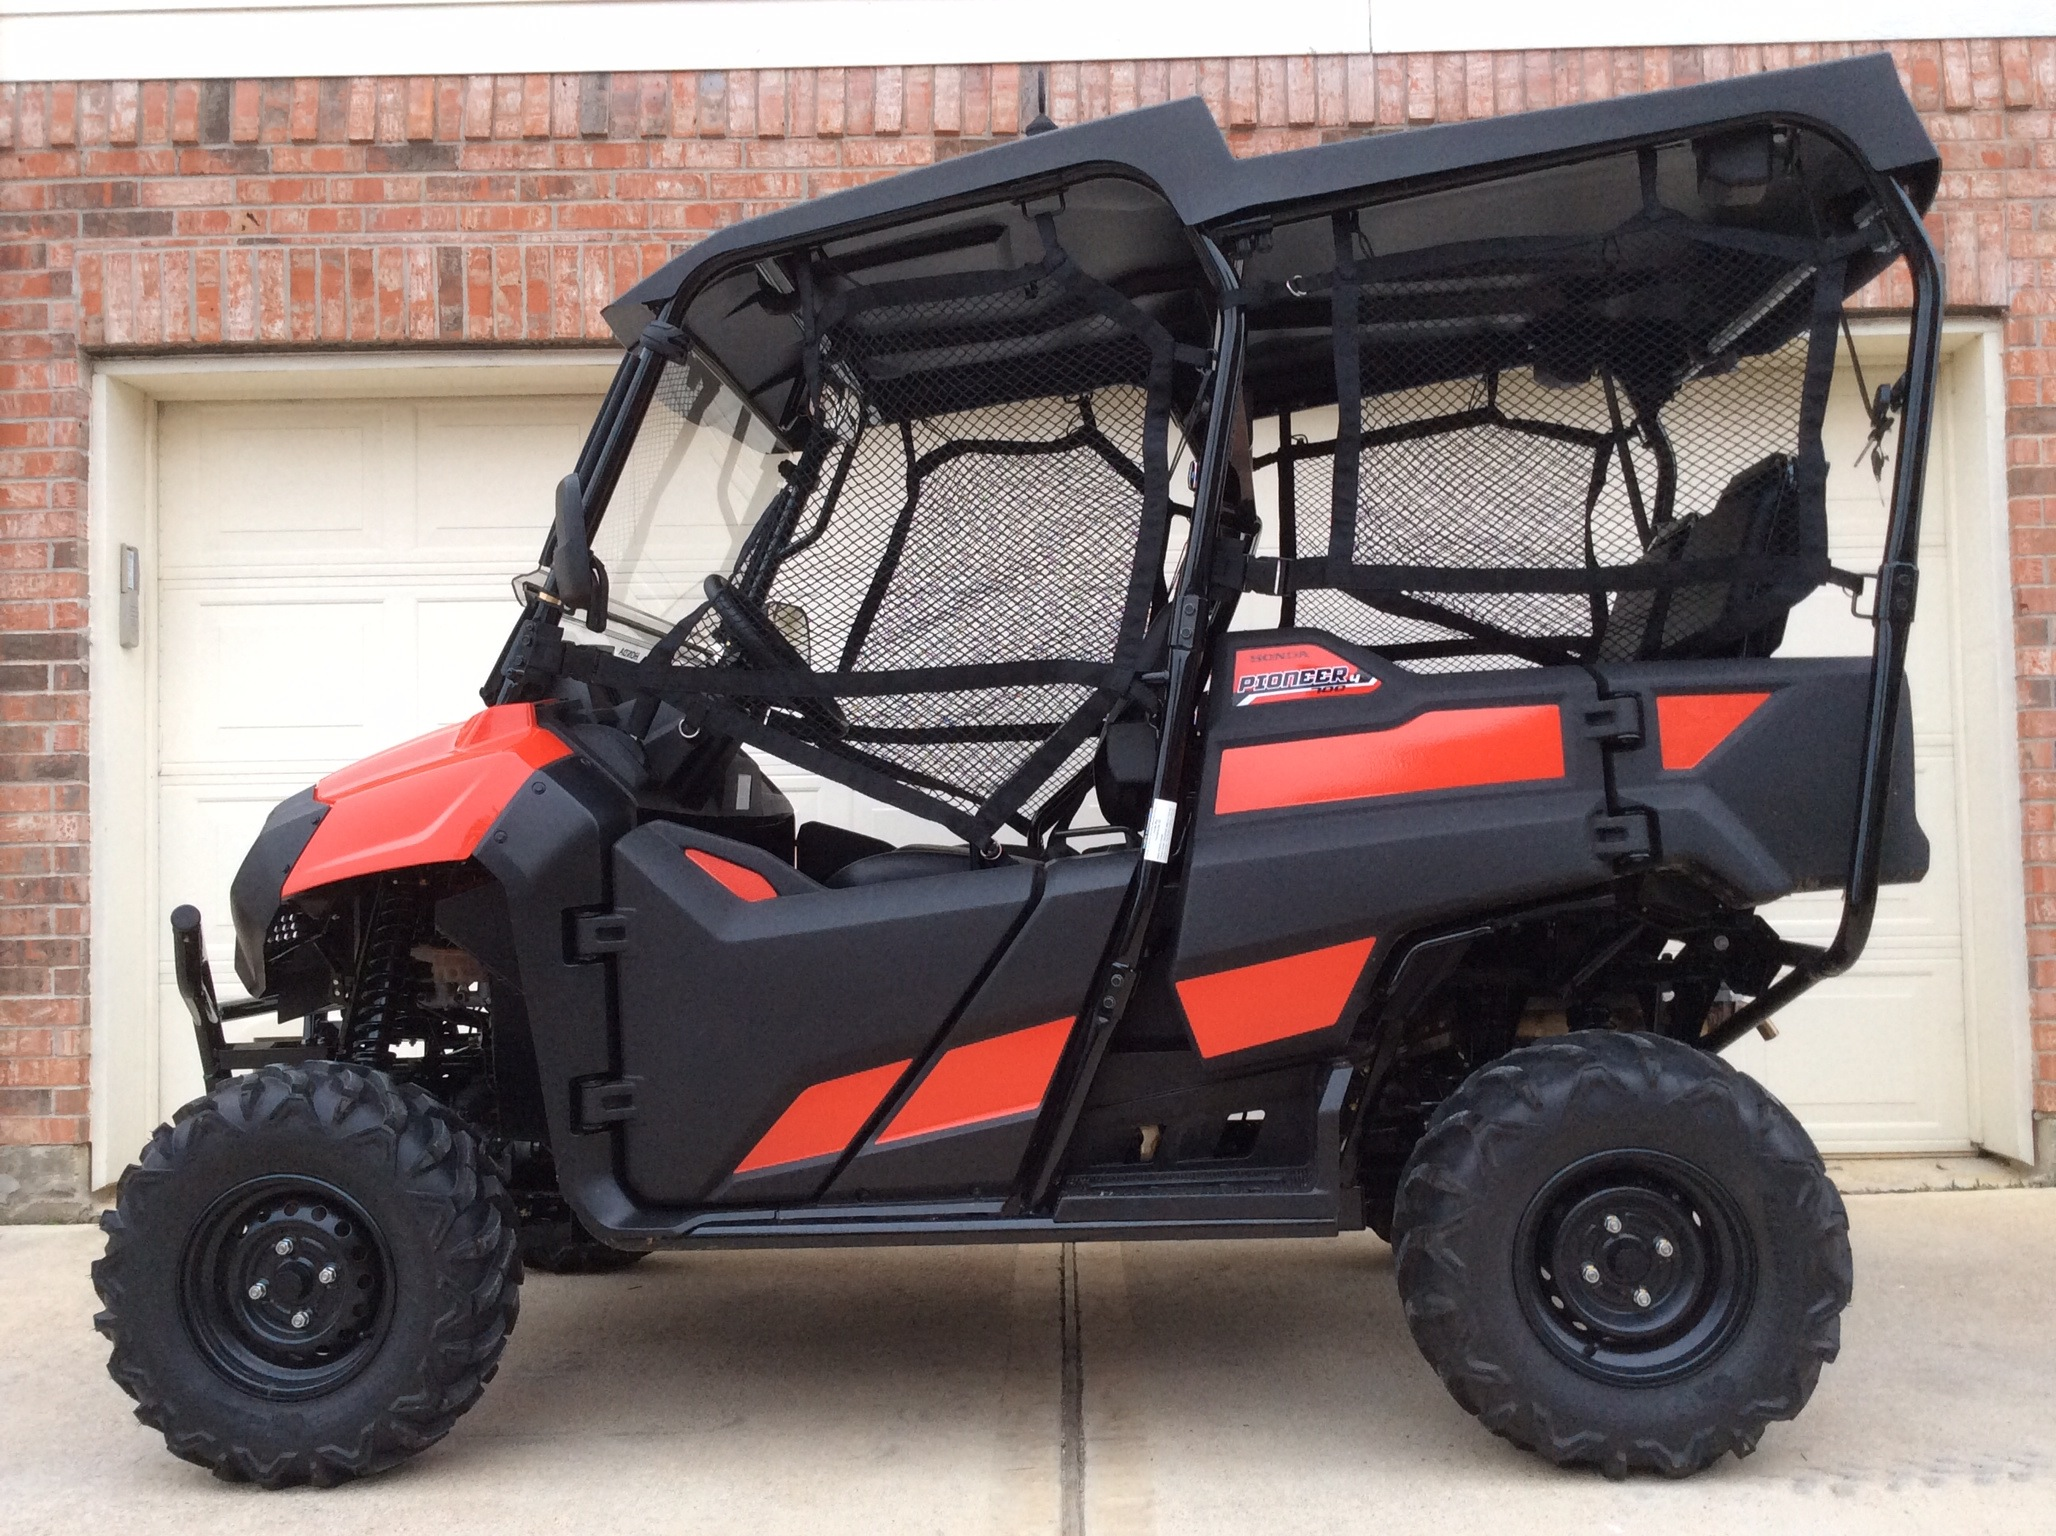 NEW HONDA PIONEER GRAPHIC KIT IS NOW AVAILABLE! | The Honda